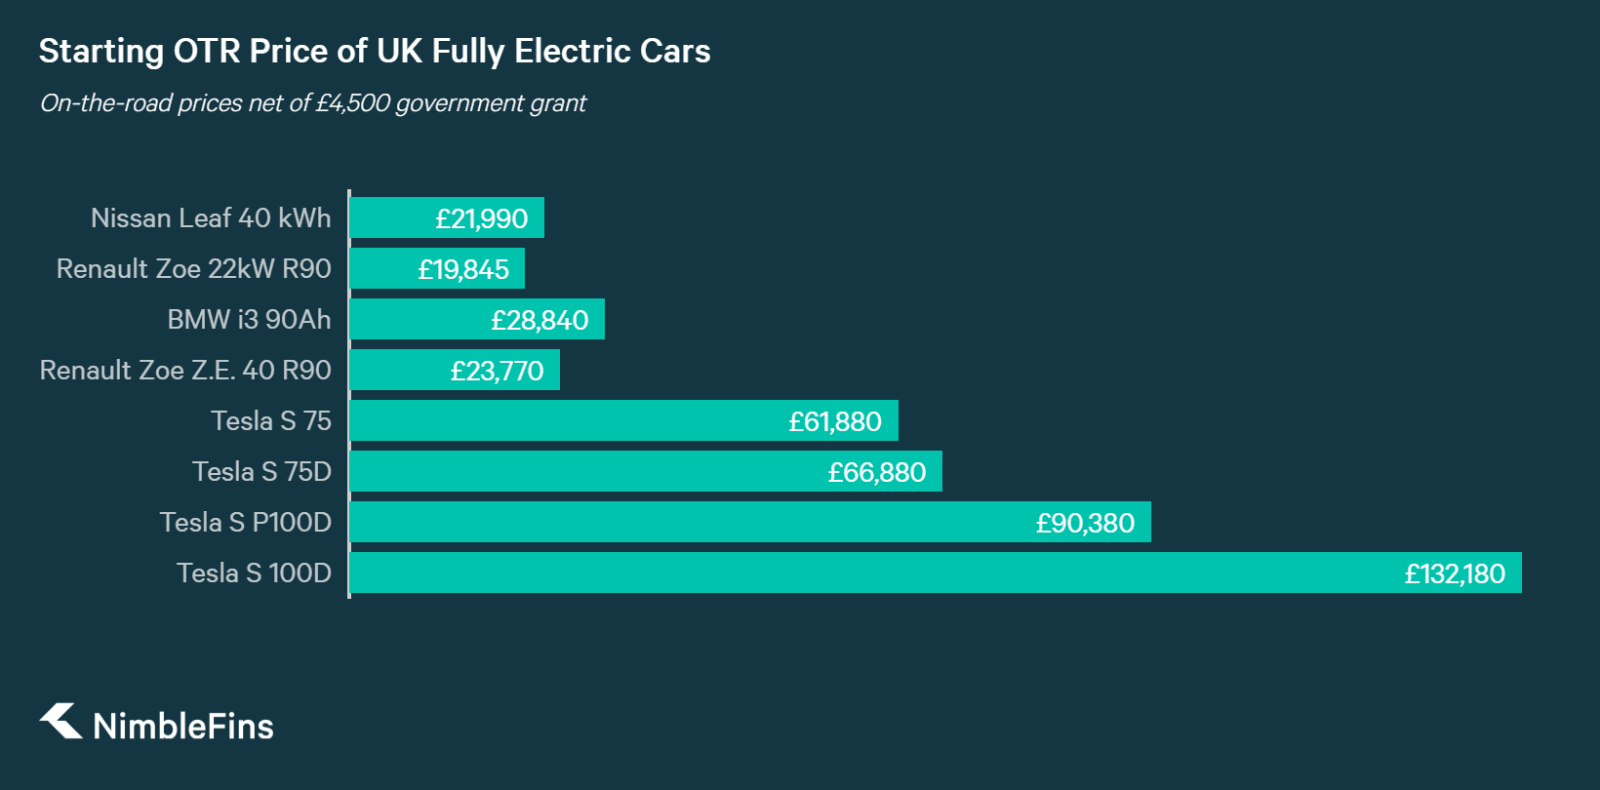 chart showing starting prices of electric cars